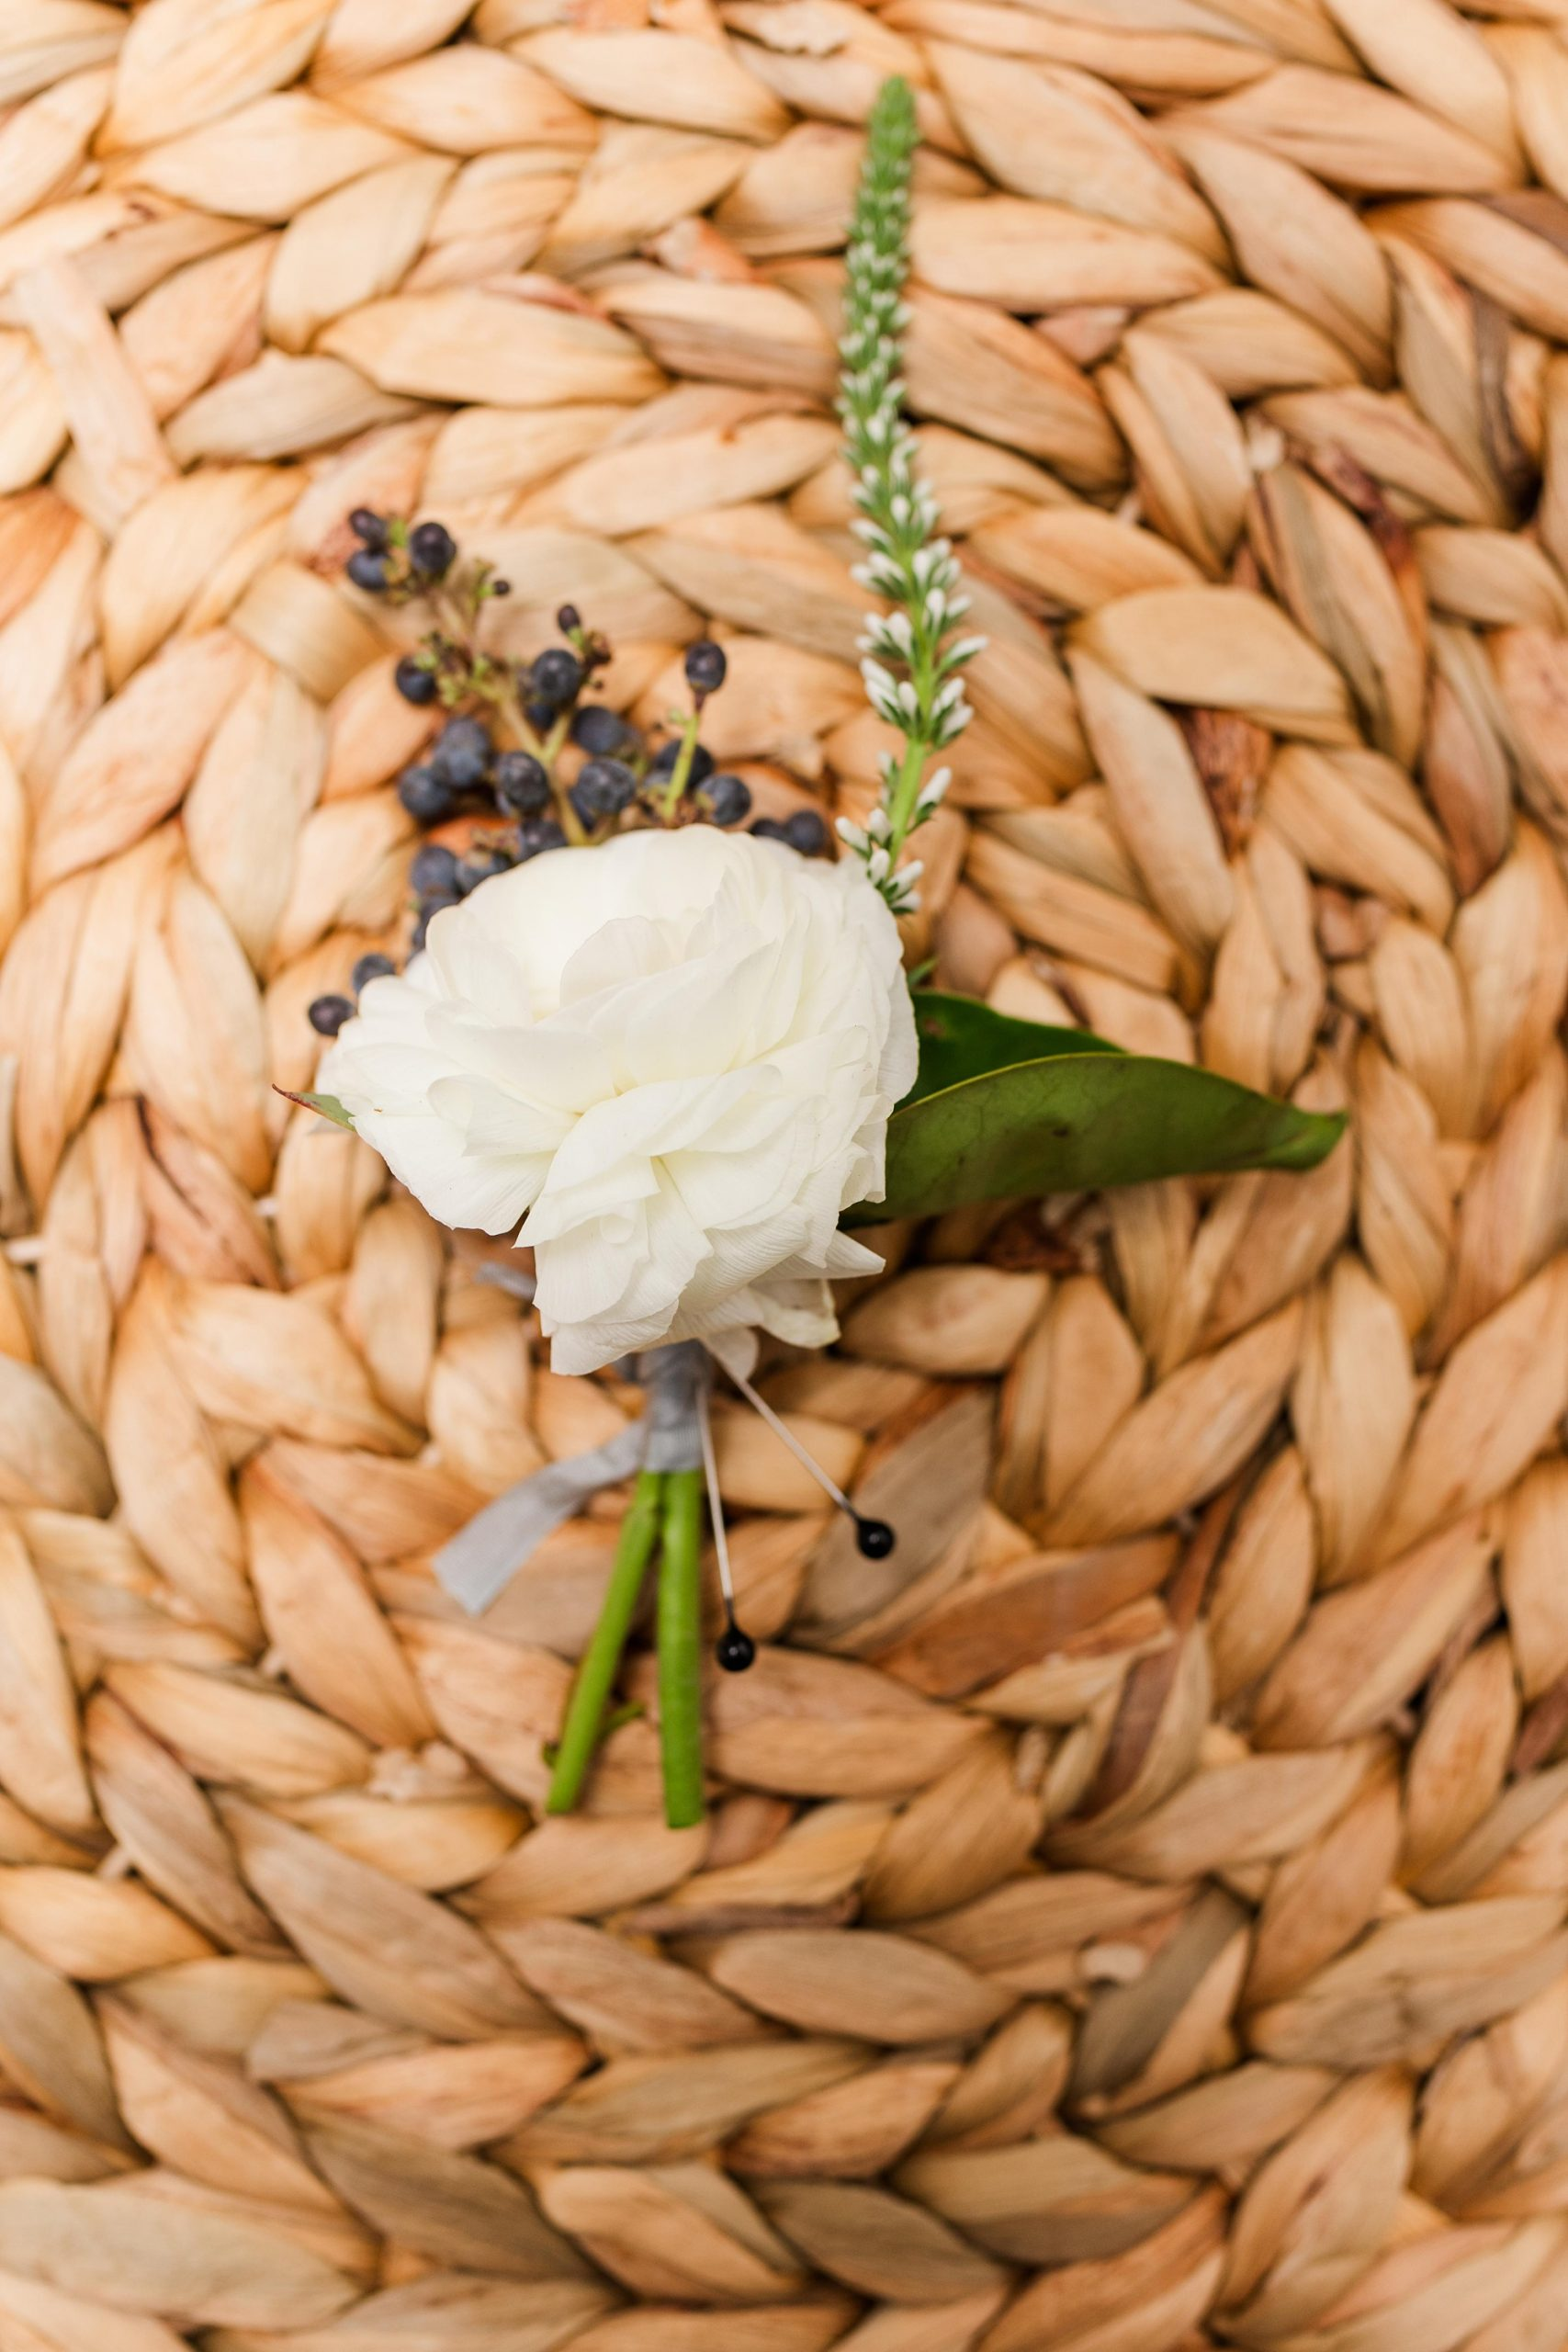 groom's boutonniere on basket before New Year's Eve wedding